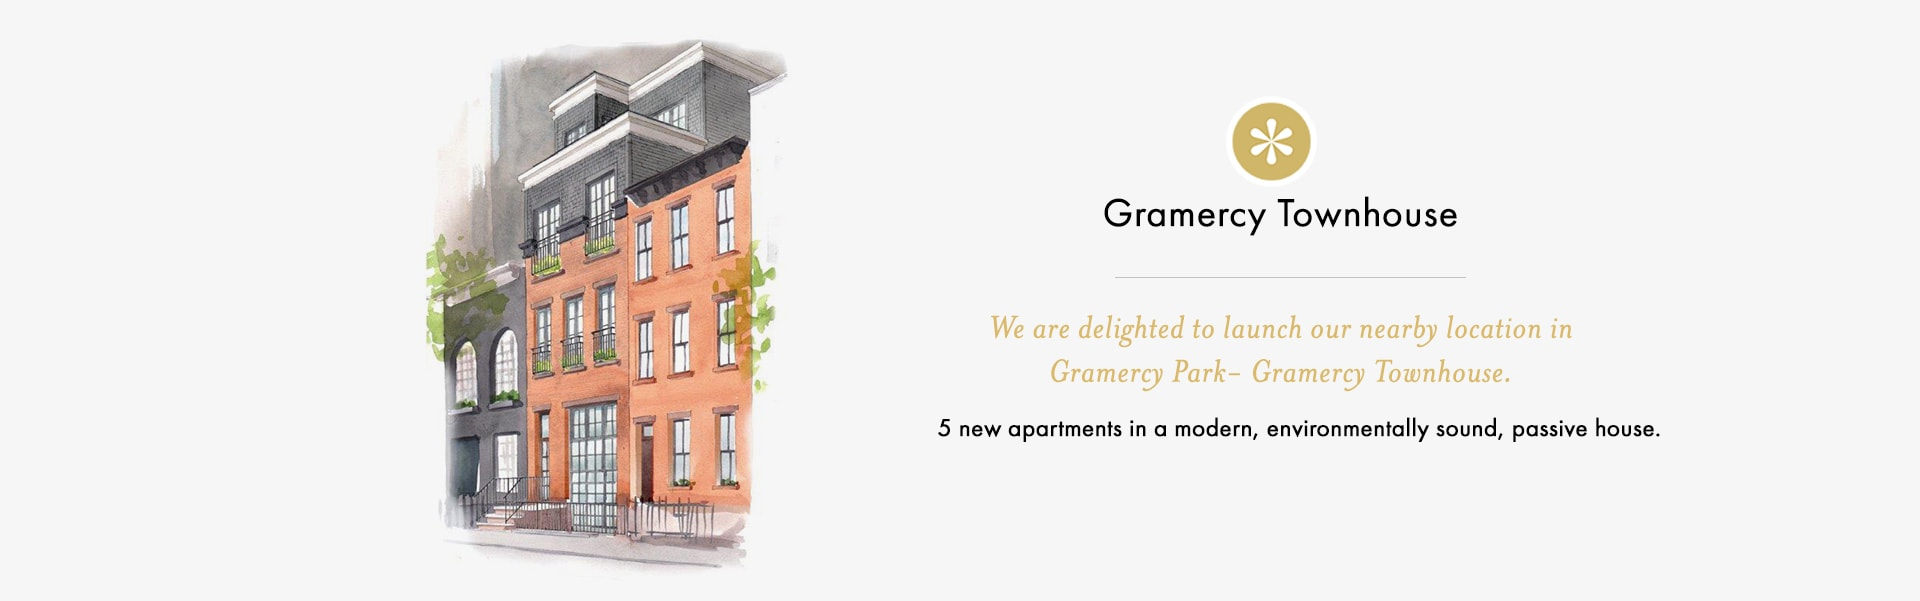 New Gramercy Townhouse Apartments